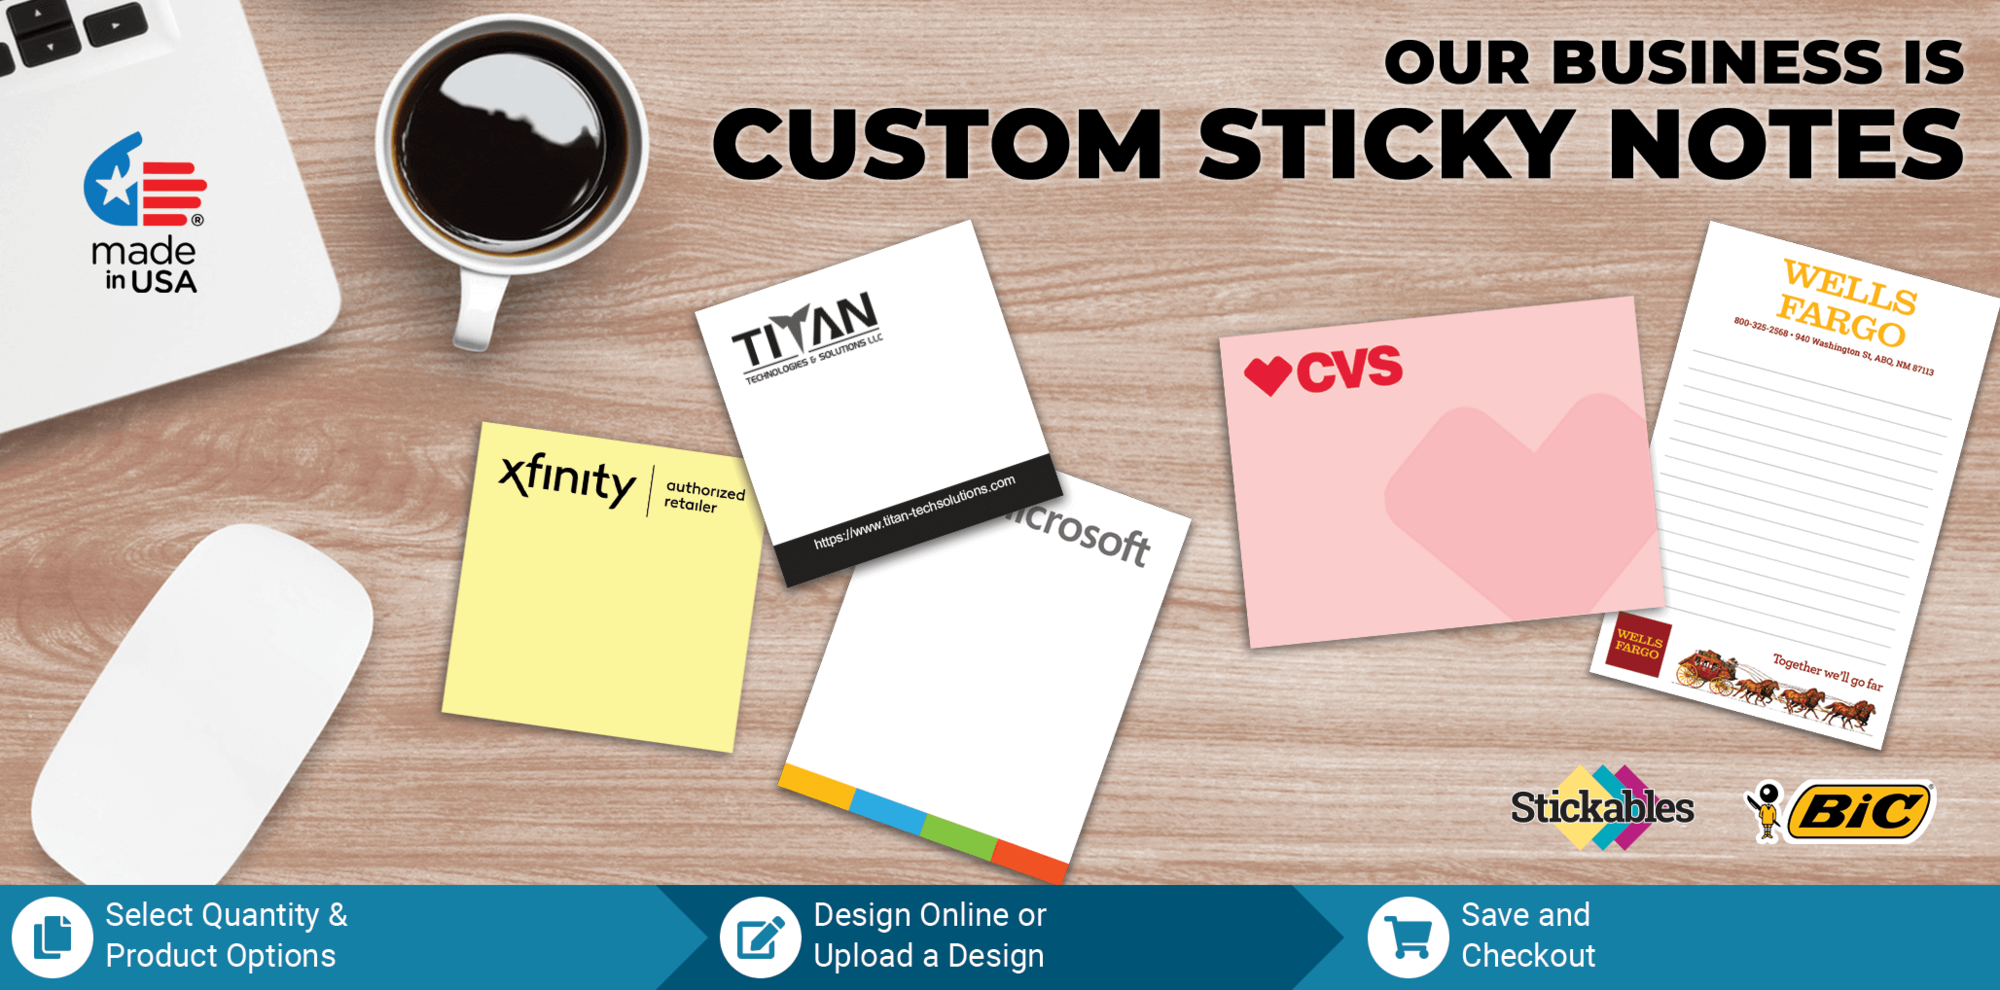 https://printpps.com/images/products_gallery_images/Custom-Sticky-Notes_Product-Page-Banner45.png